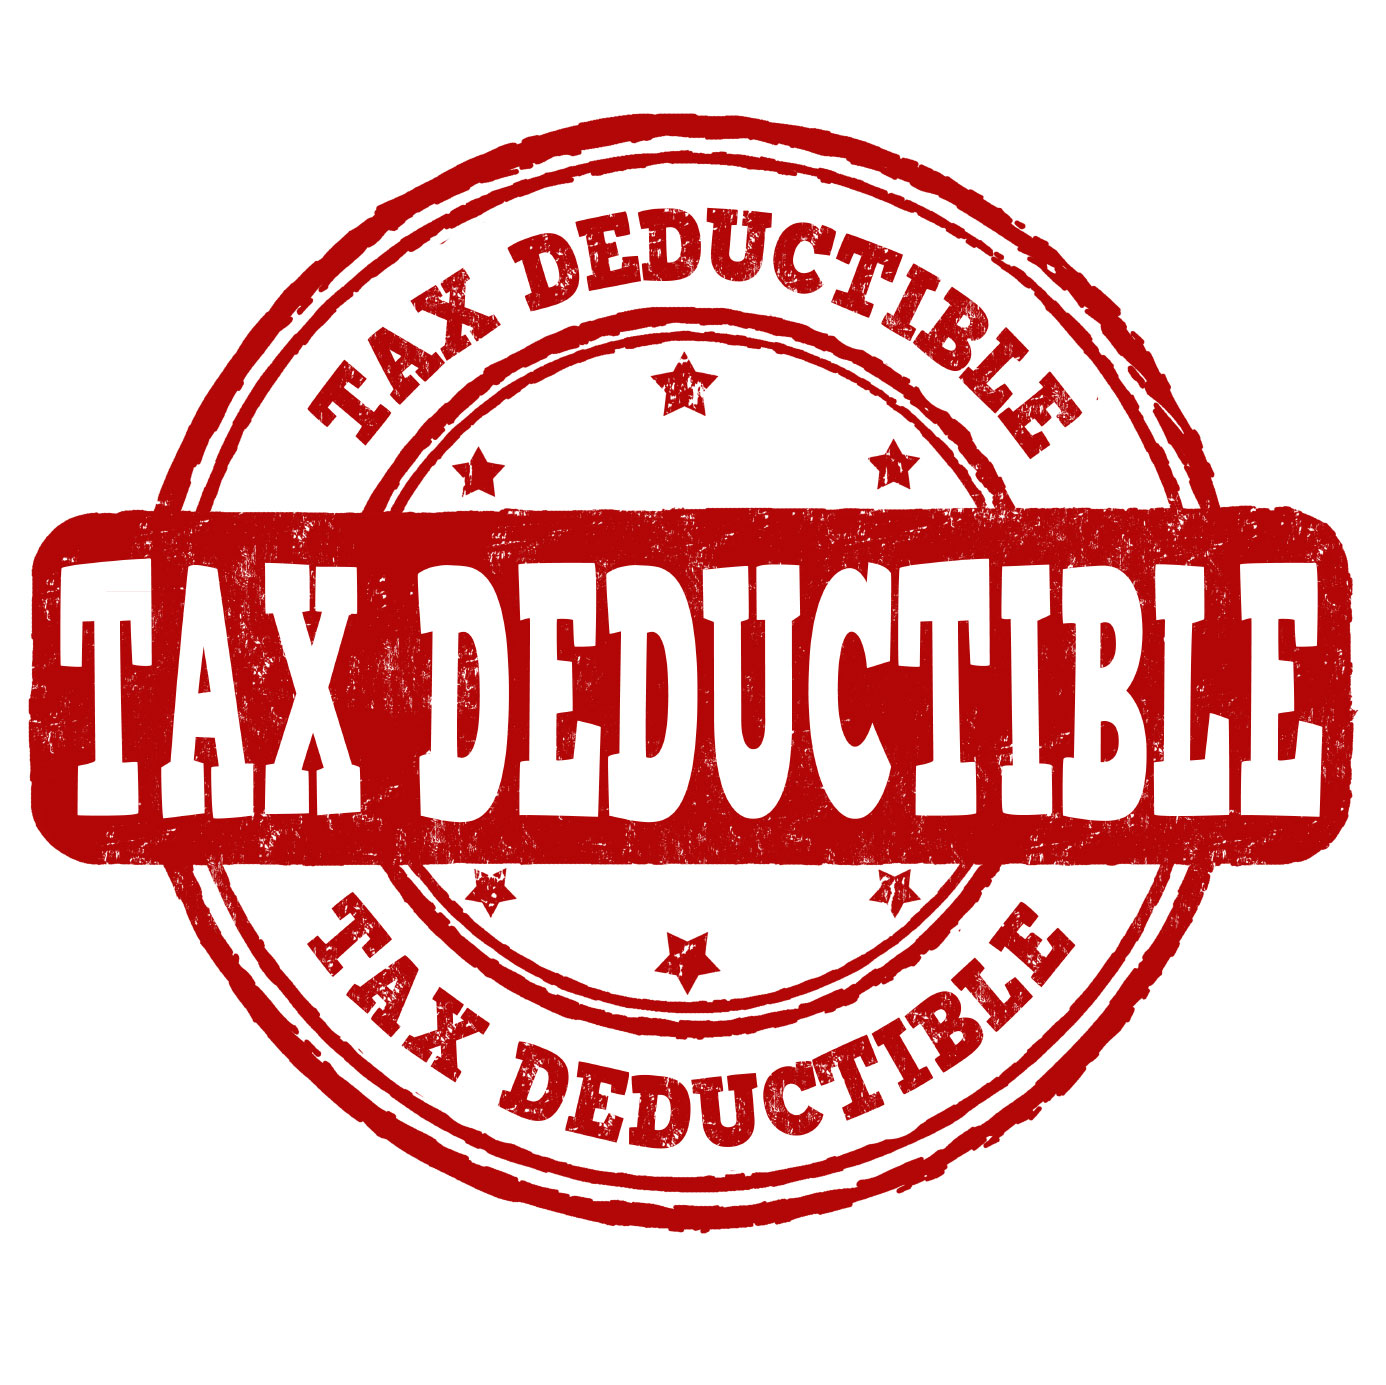 Home Care Expenses Tax Deductible